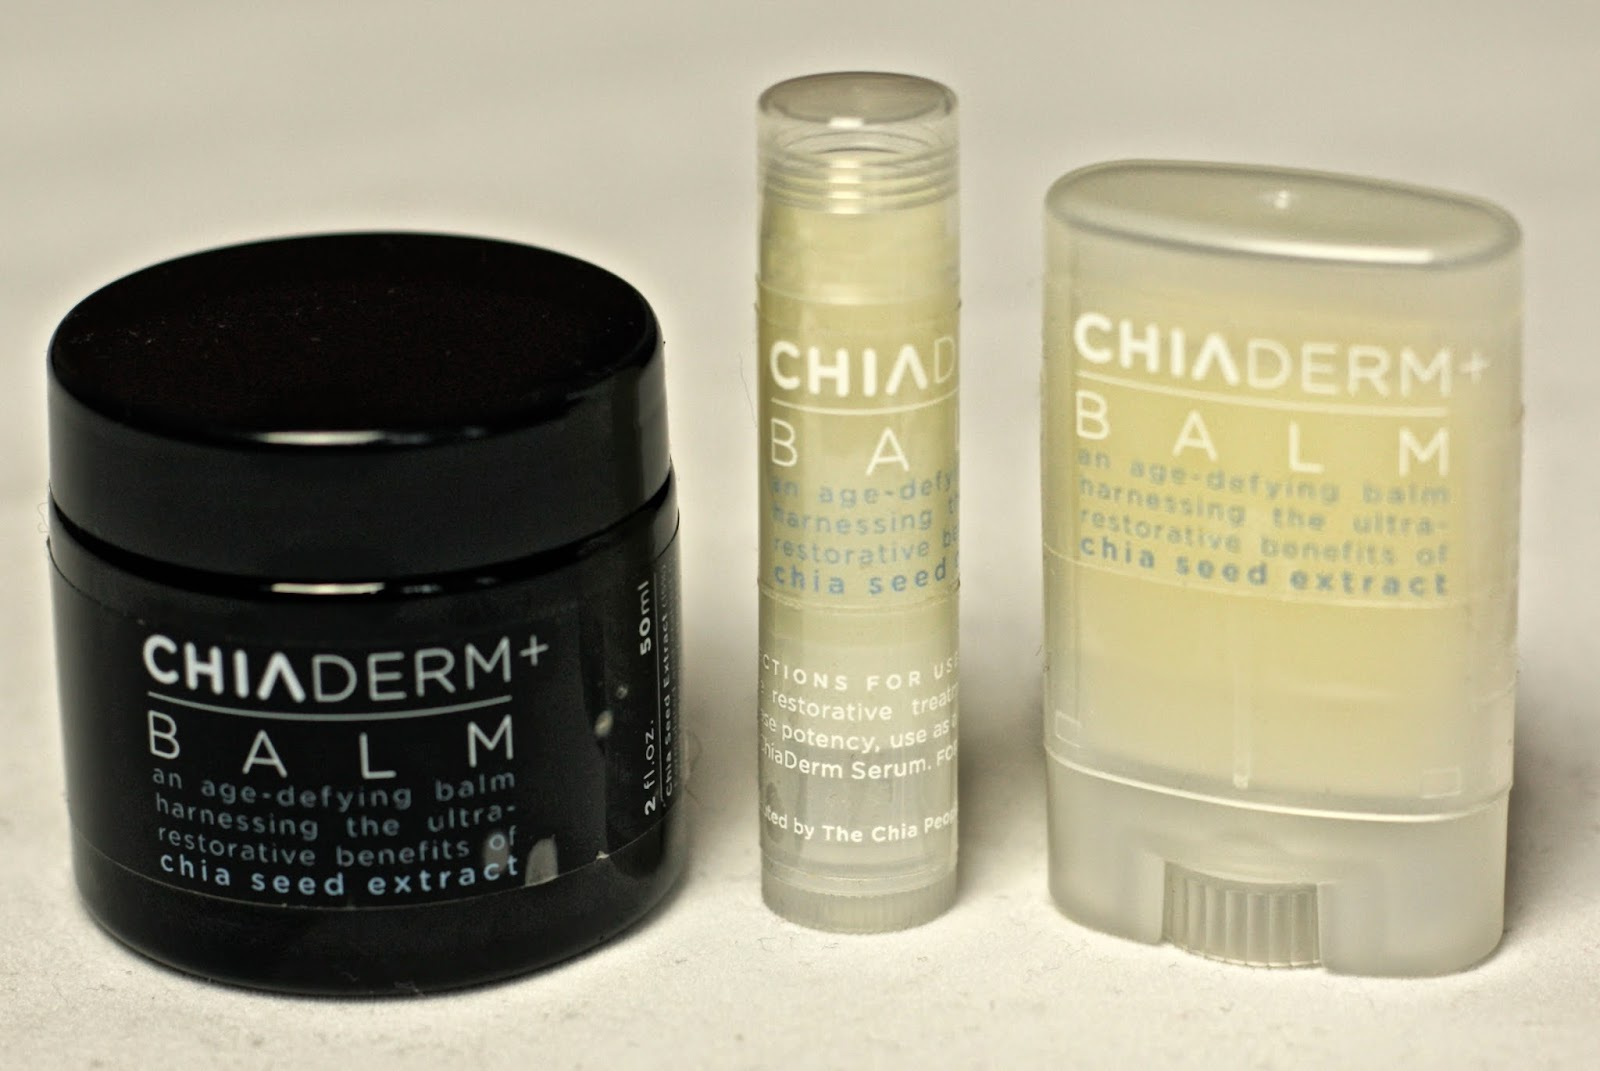 Lips balm set by ChiaDerm+